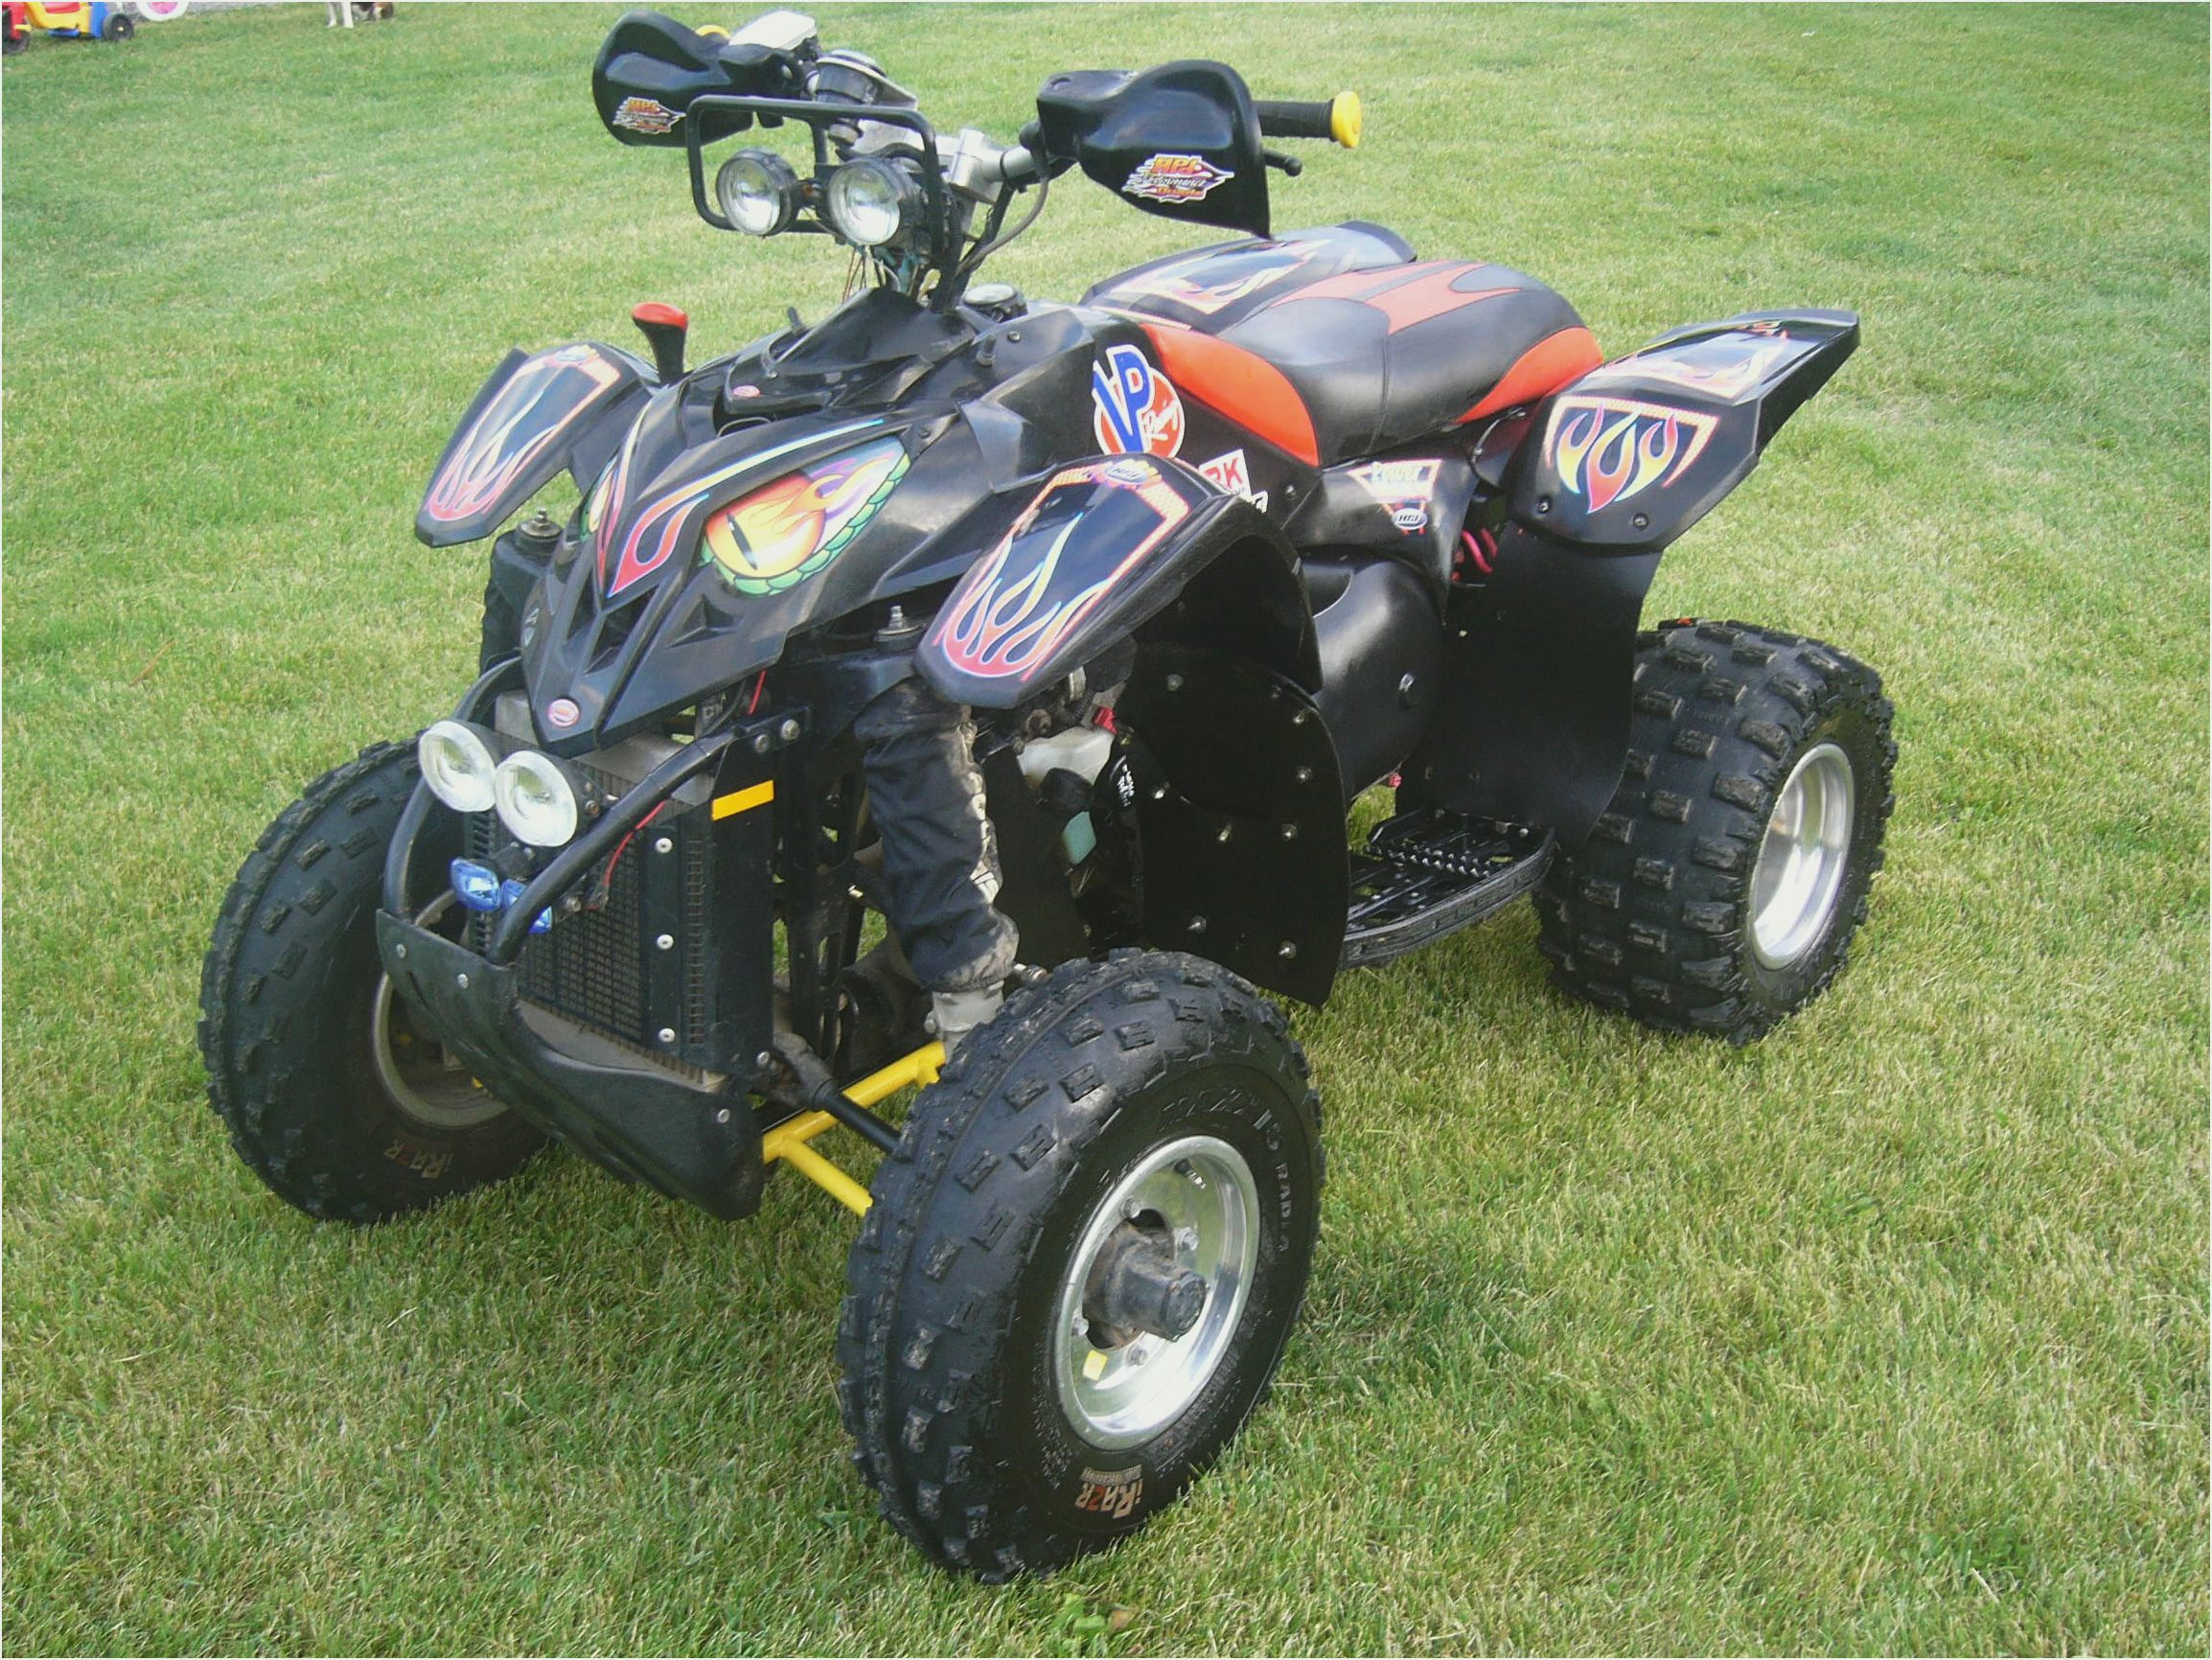 Polaris Scrambler 500 4x4 2006 images #121168